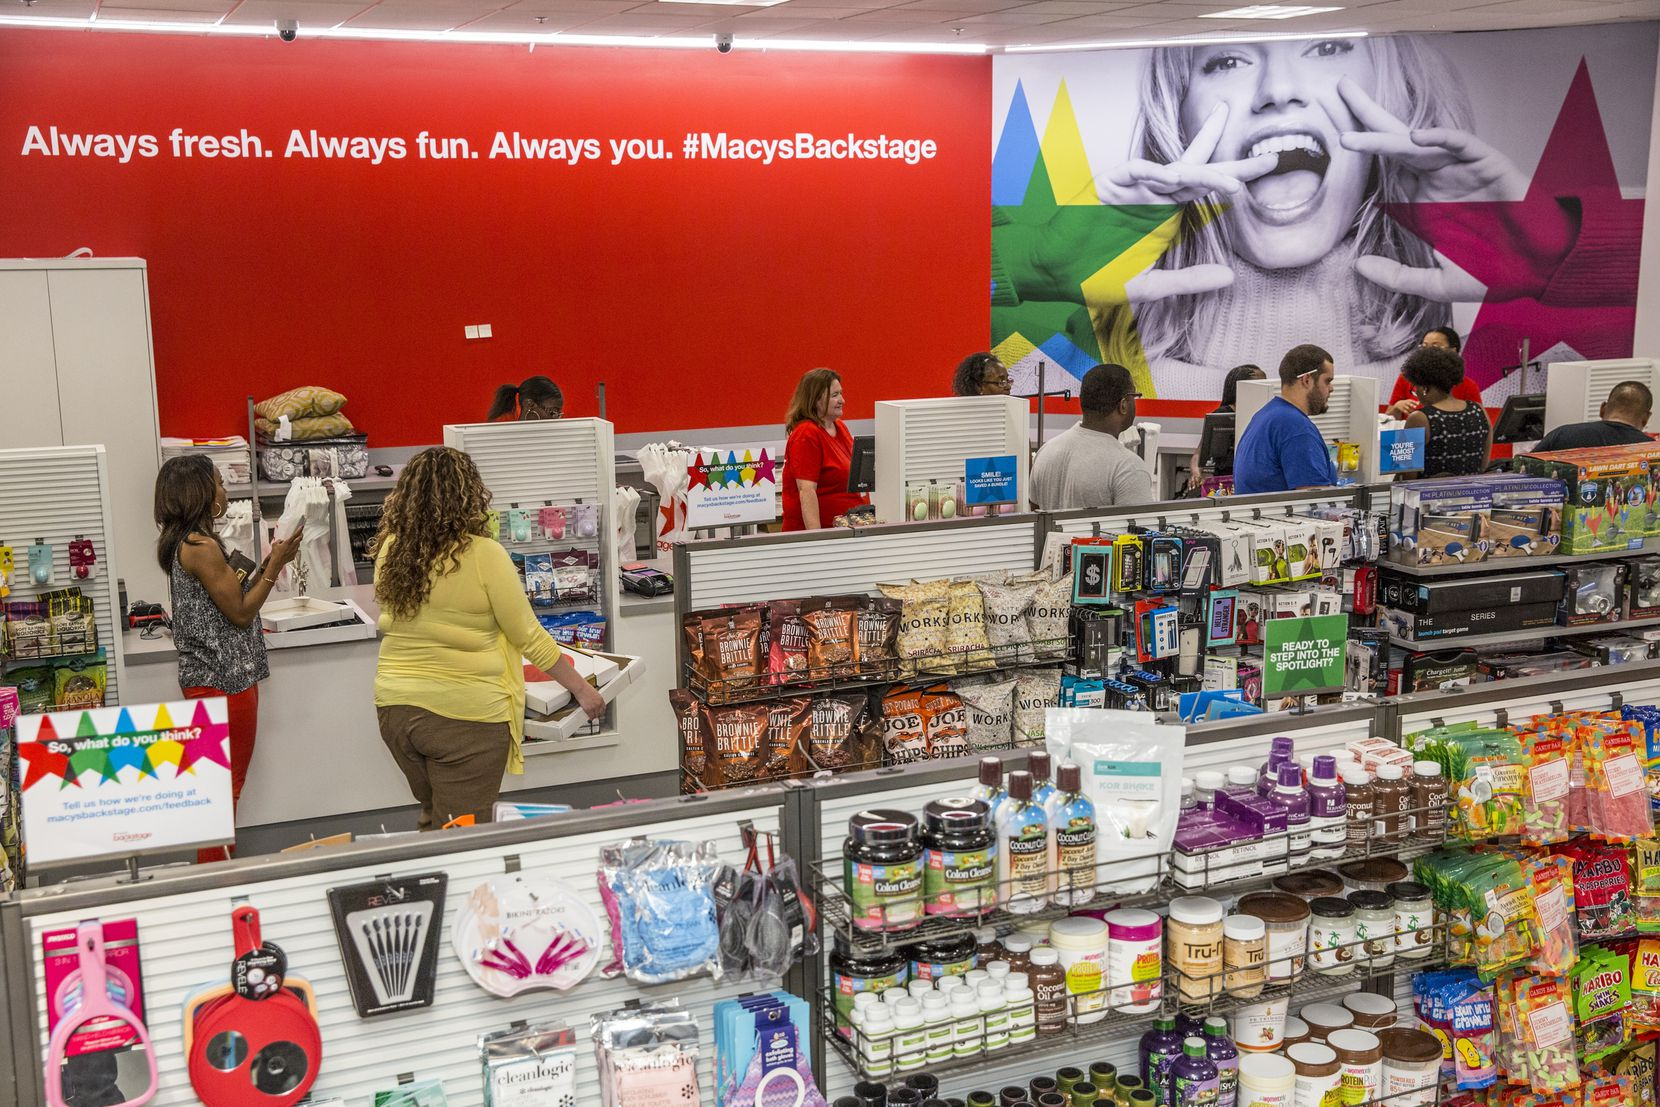 The grand opening of Macy's Backstage at Town East Mall will be celebrated with gift card giveaways and special events at the store throughout the day on Saturday, July 23rd. (Shannon Faulk/AP Images for Macy's)